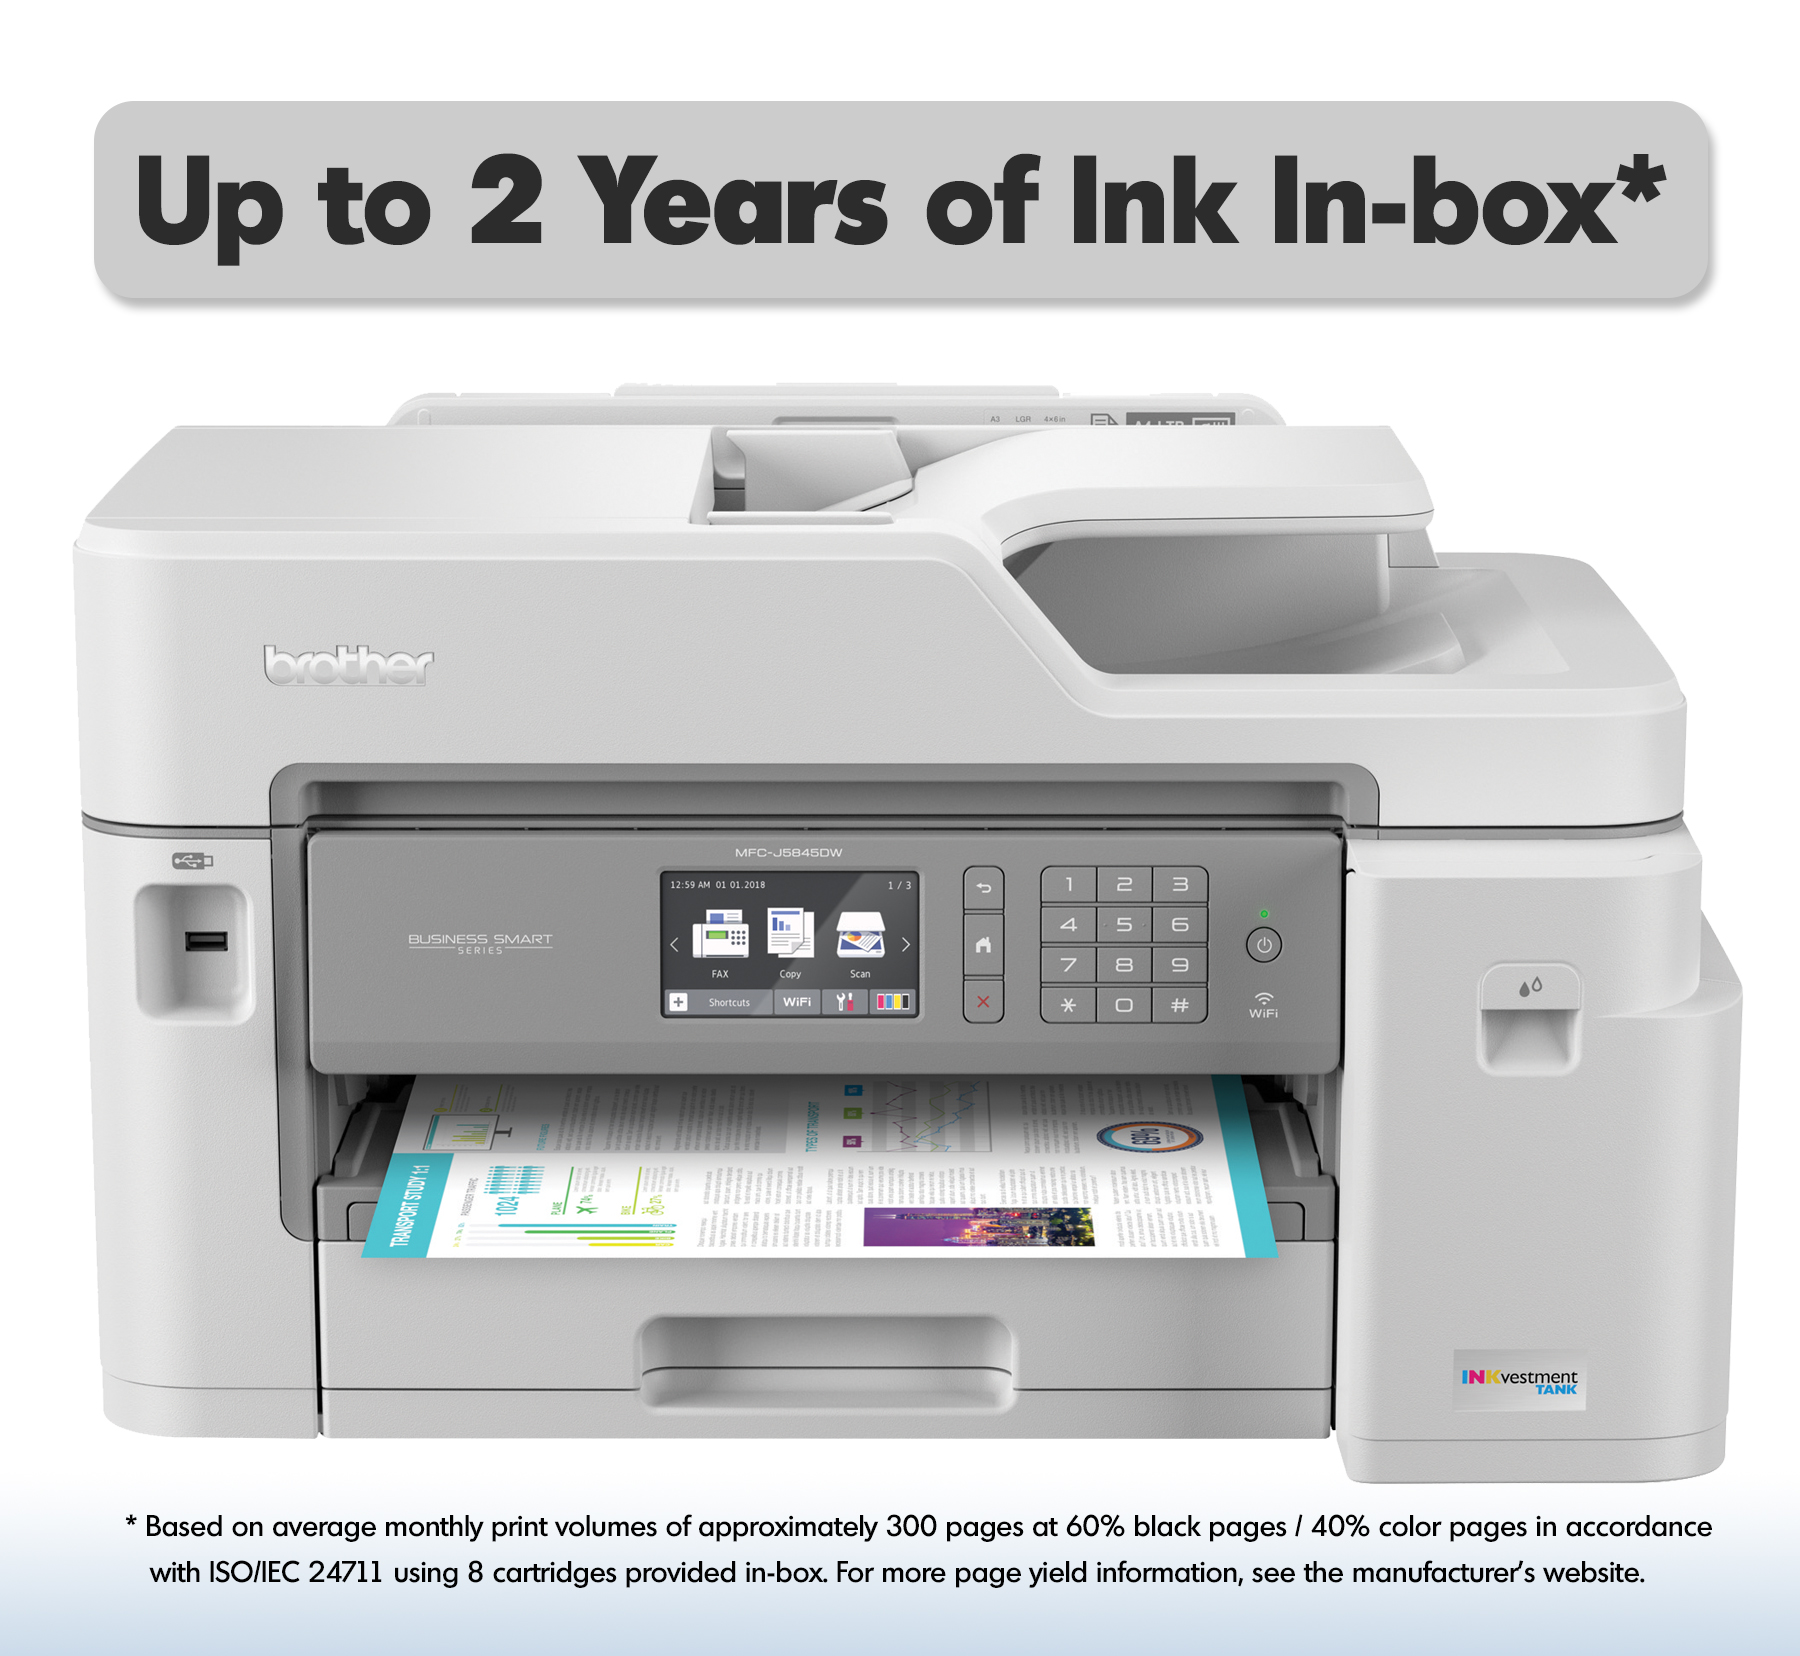 Brother MFC-J5845DW XL Extended Print INKvestment Tank Color Inkjet All-in-One Wireless Printer with Up to 2-Years of Ink In-box